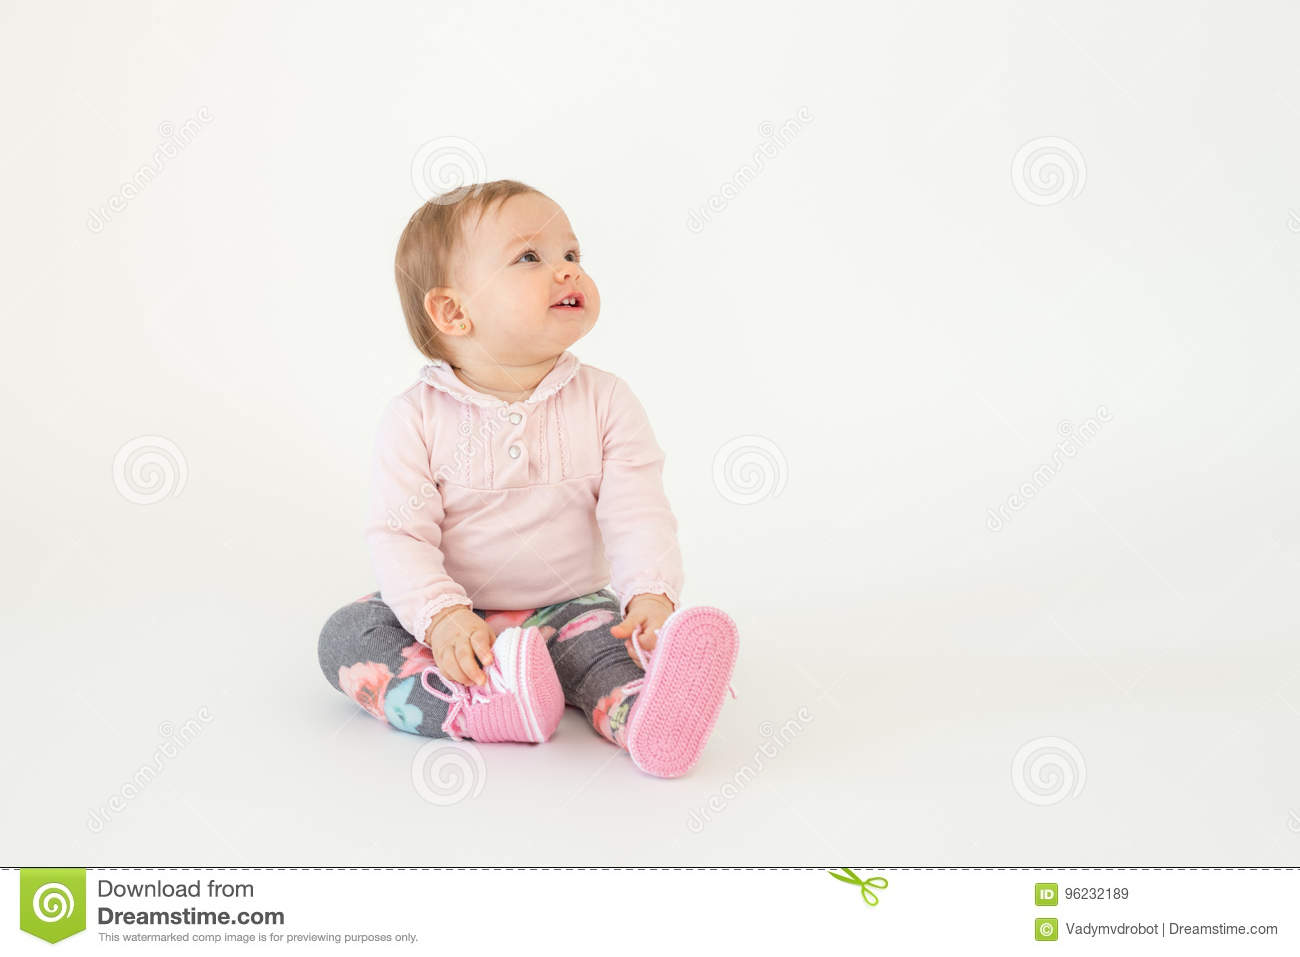 93d964d6b75c Photo of cute little baby girl sitting on floor isolated over white  background. Looking aside.